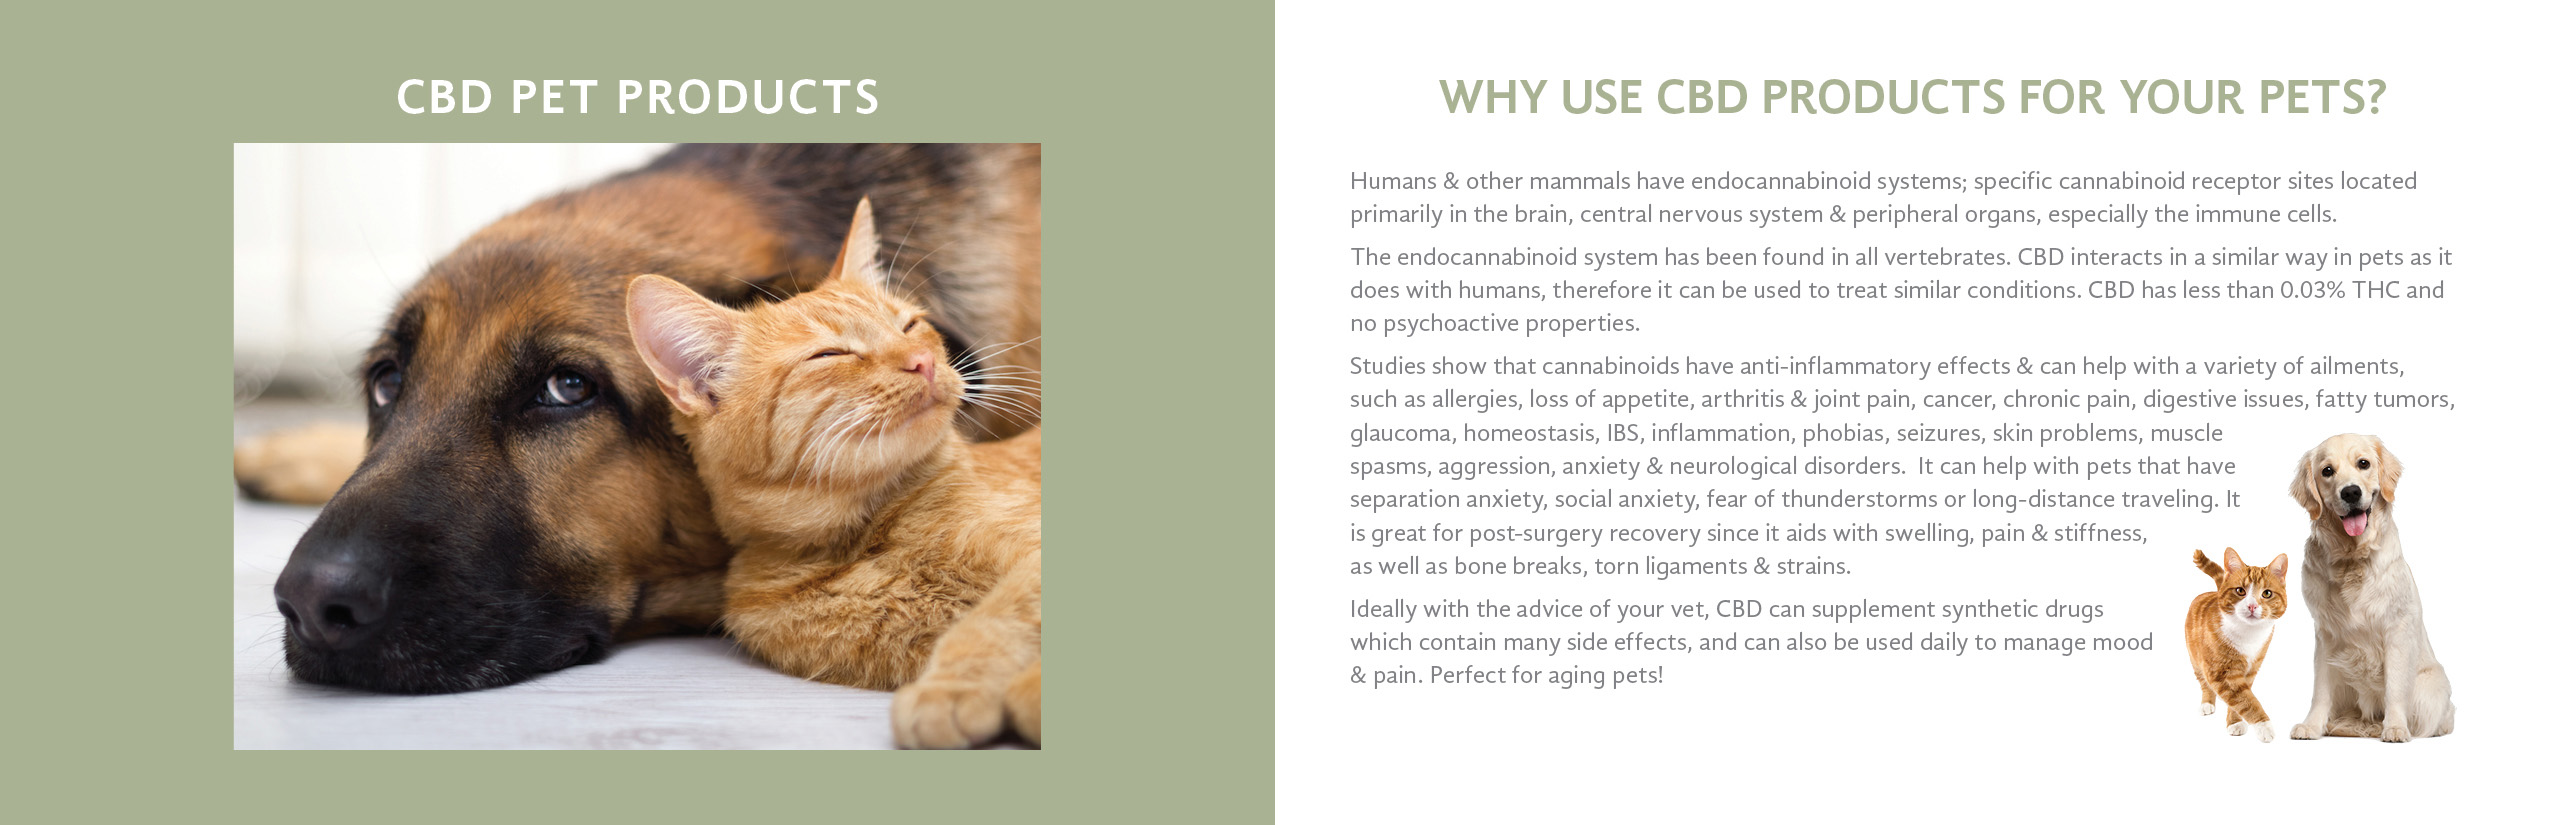 Hemp Cbd Oil for Pets in Okotoks Alberta